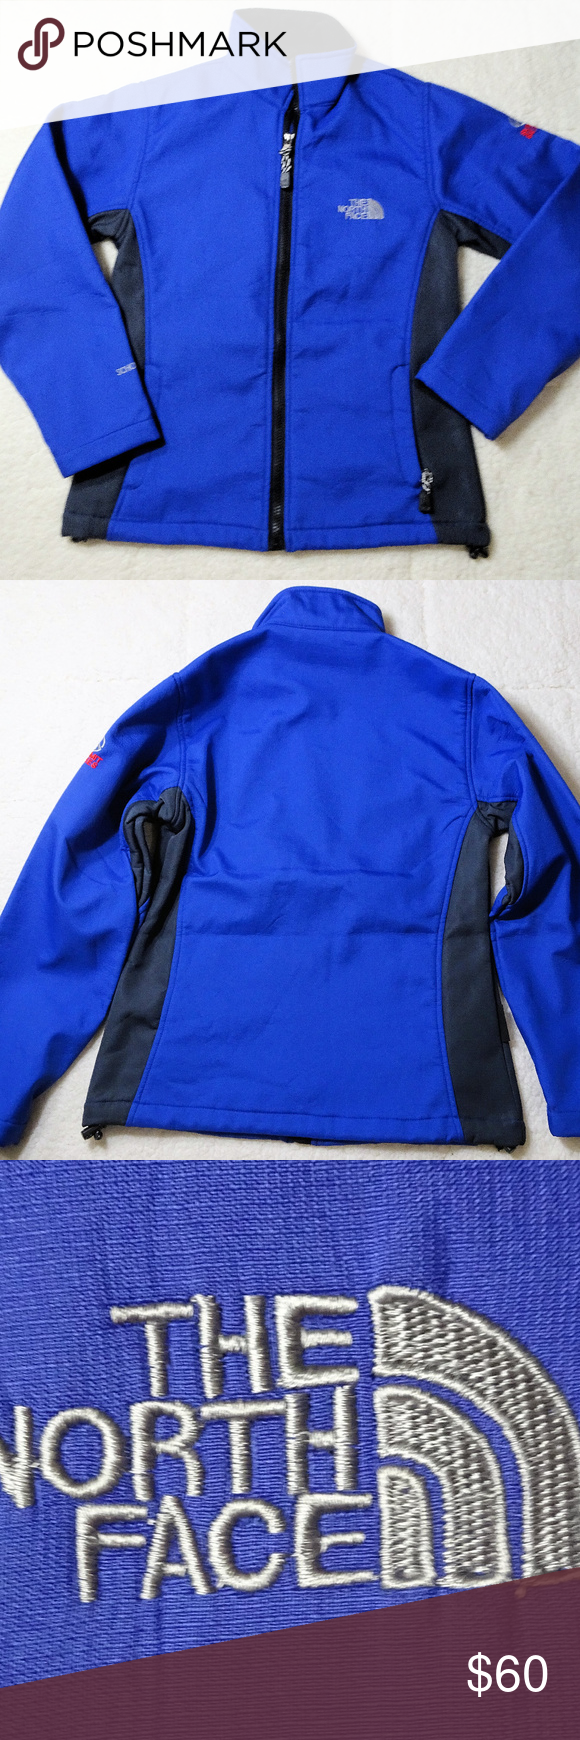 The North Face Full Zip Summit Series 3xdry Jacket Clothes Design Fashion Design Fashion [ 1740 x 580 Pixel ]